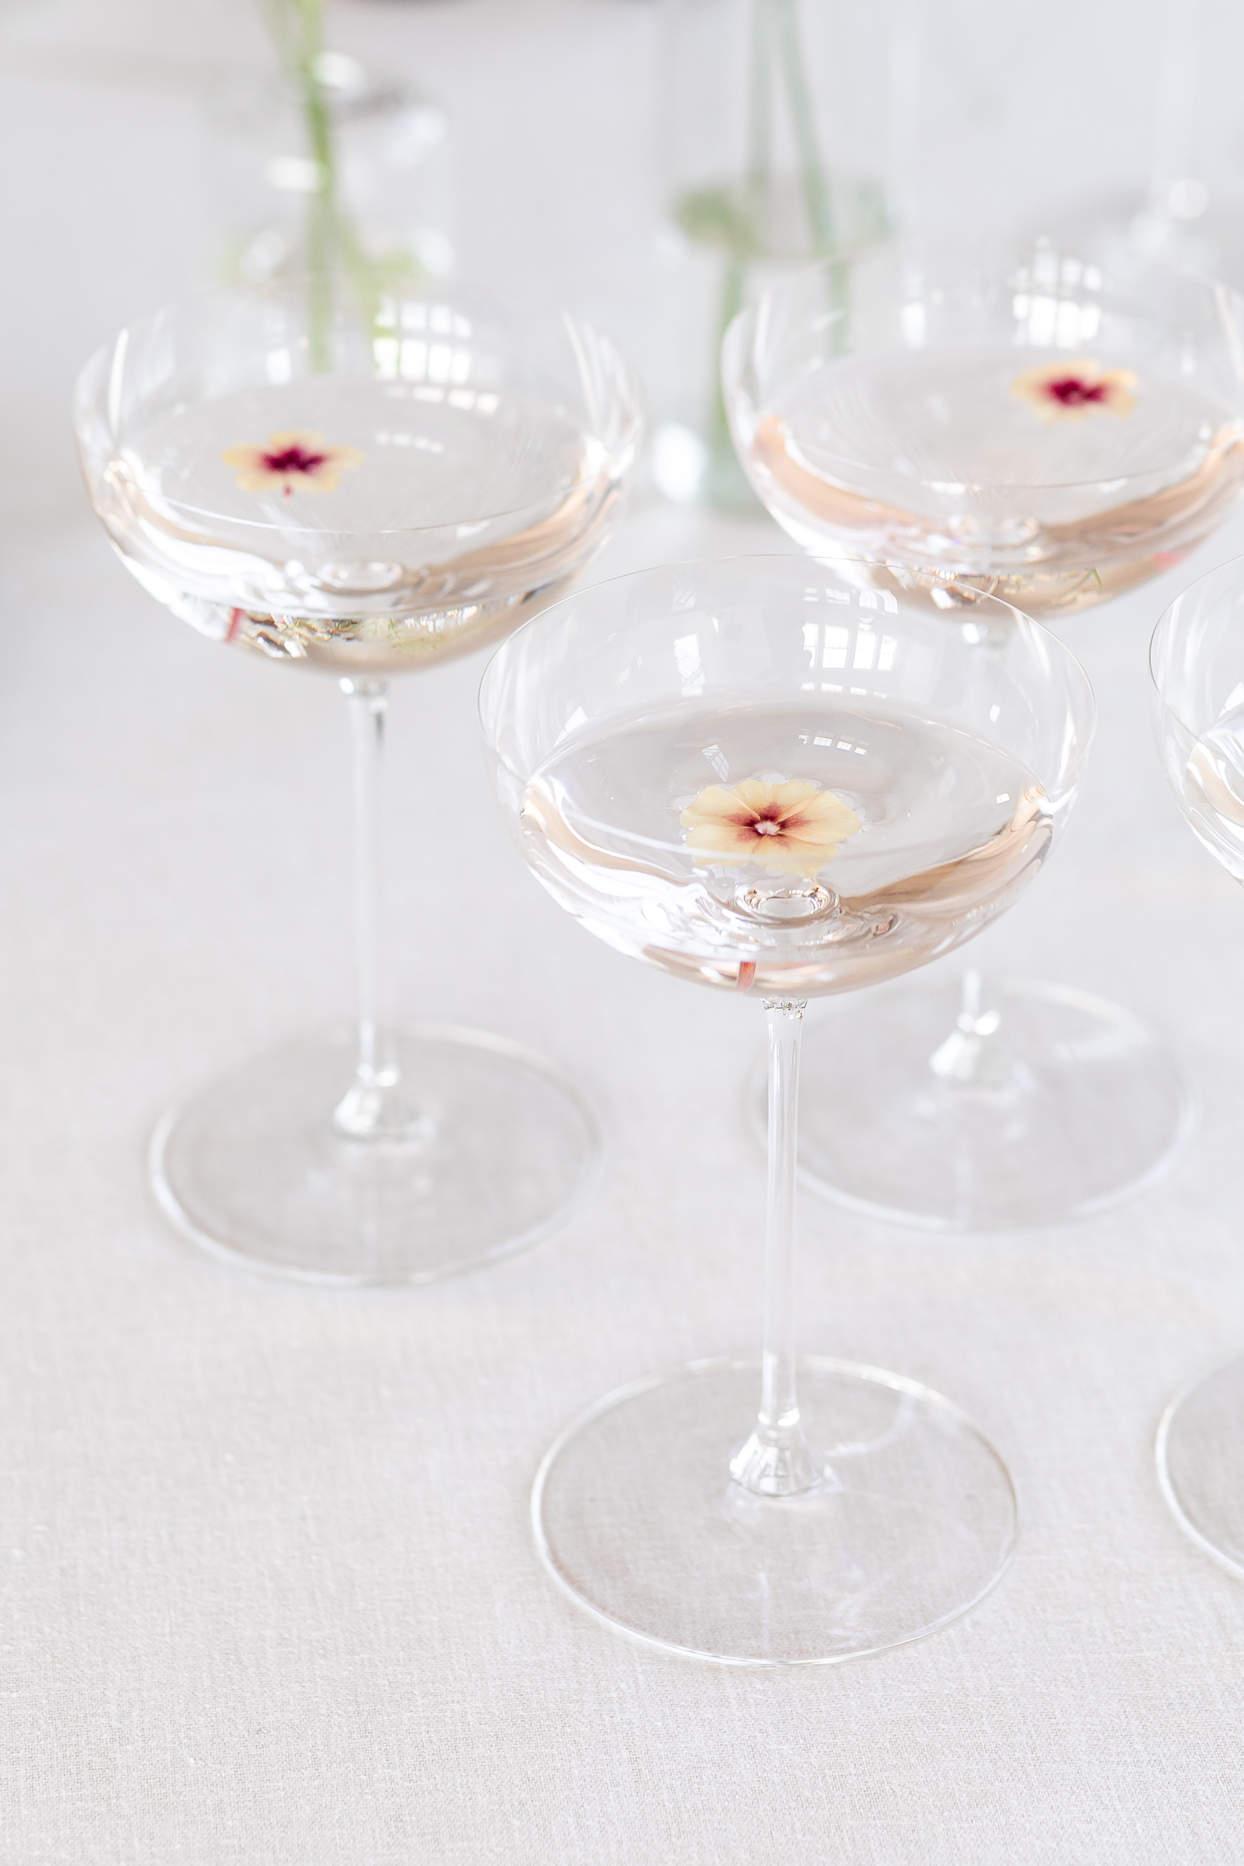 champagne coupes topped with delicate flowers